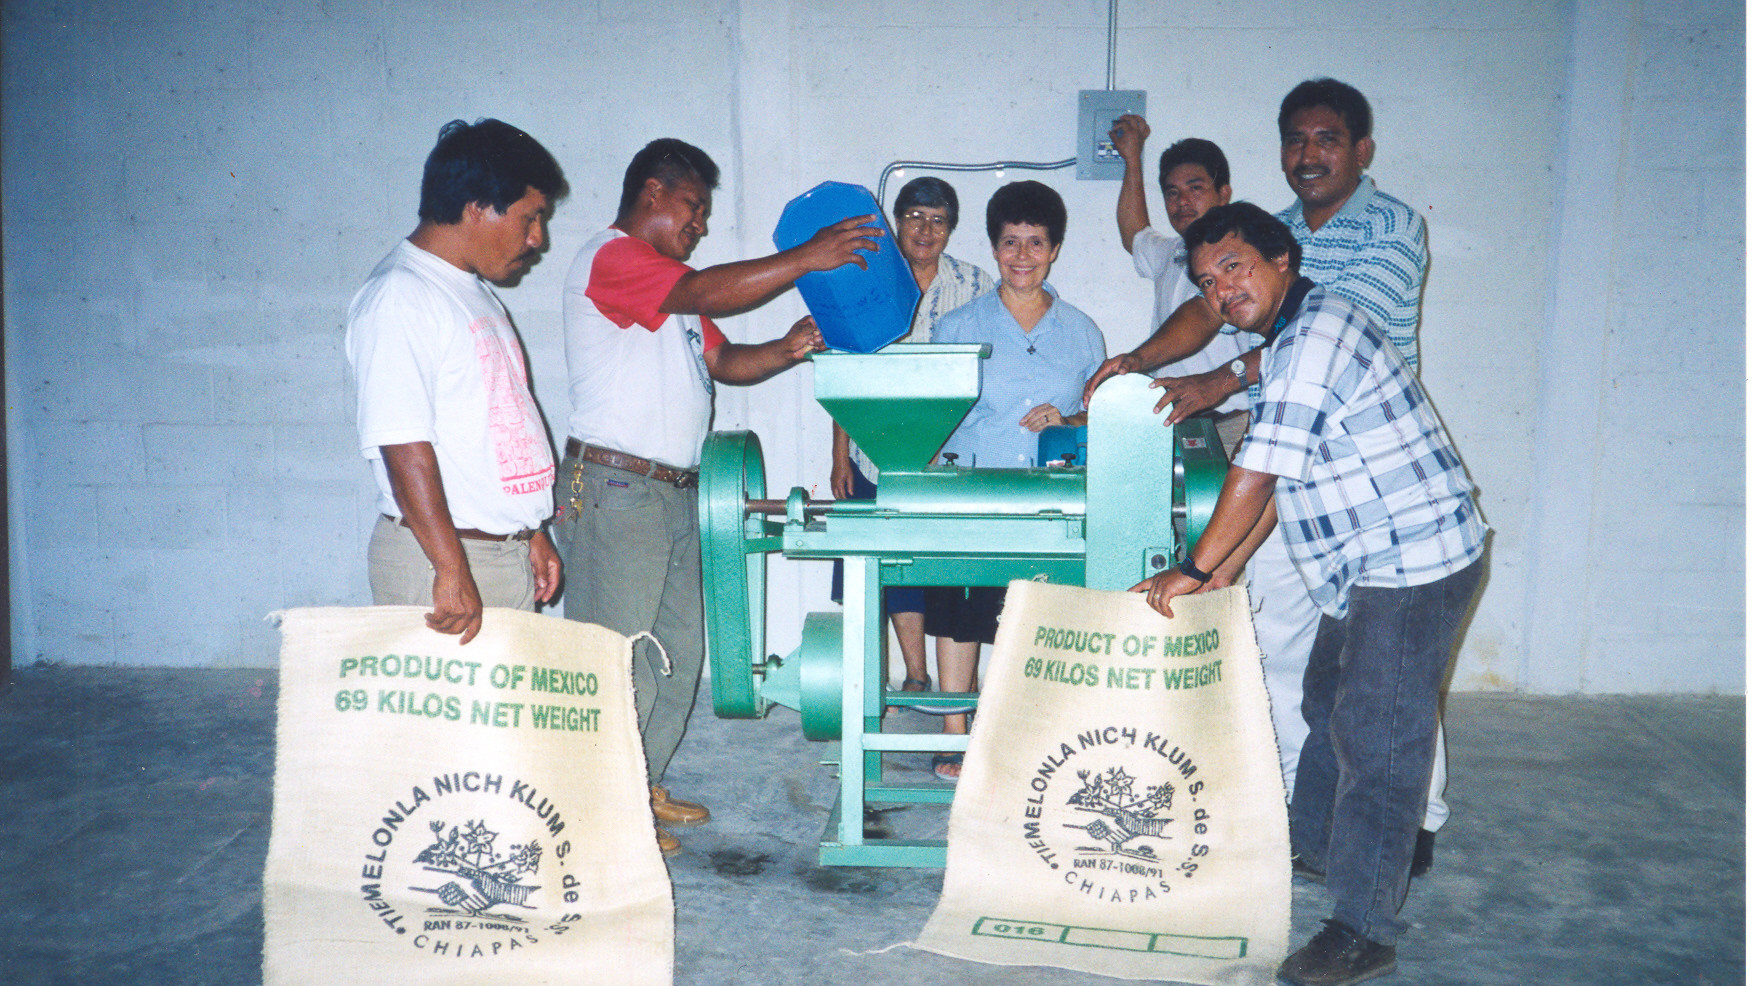 The Cooperativa de Café Tienmelonia Nich Klum, Chiapas, is a coffee cooperative that serves the indigenous people of Chiapas. By cultivating and trading organic coffee, men and women generate income and provide a better quality of life for their families.